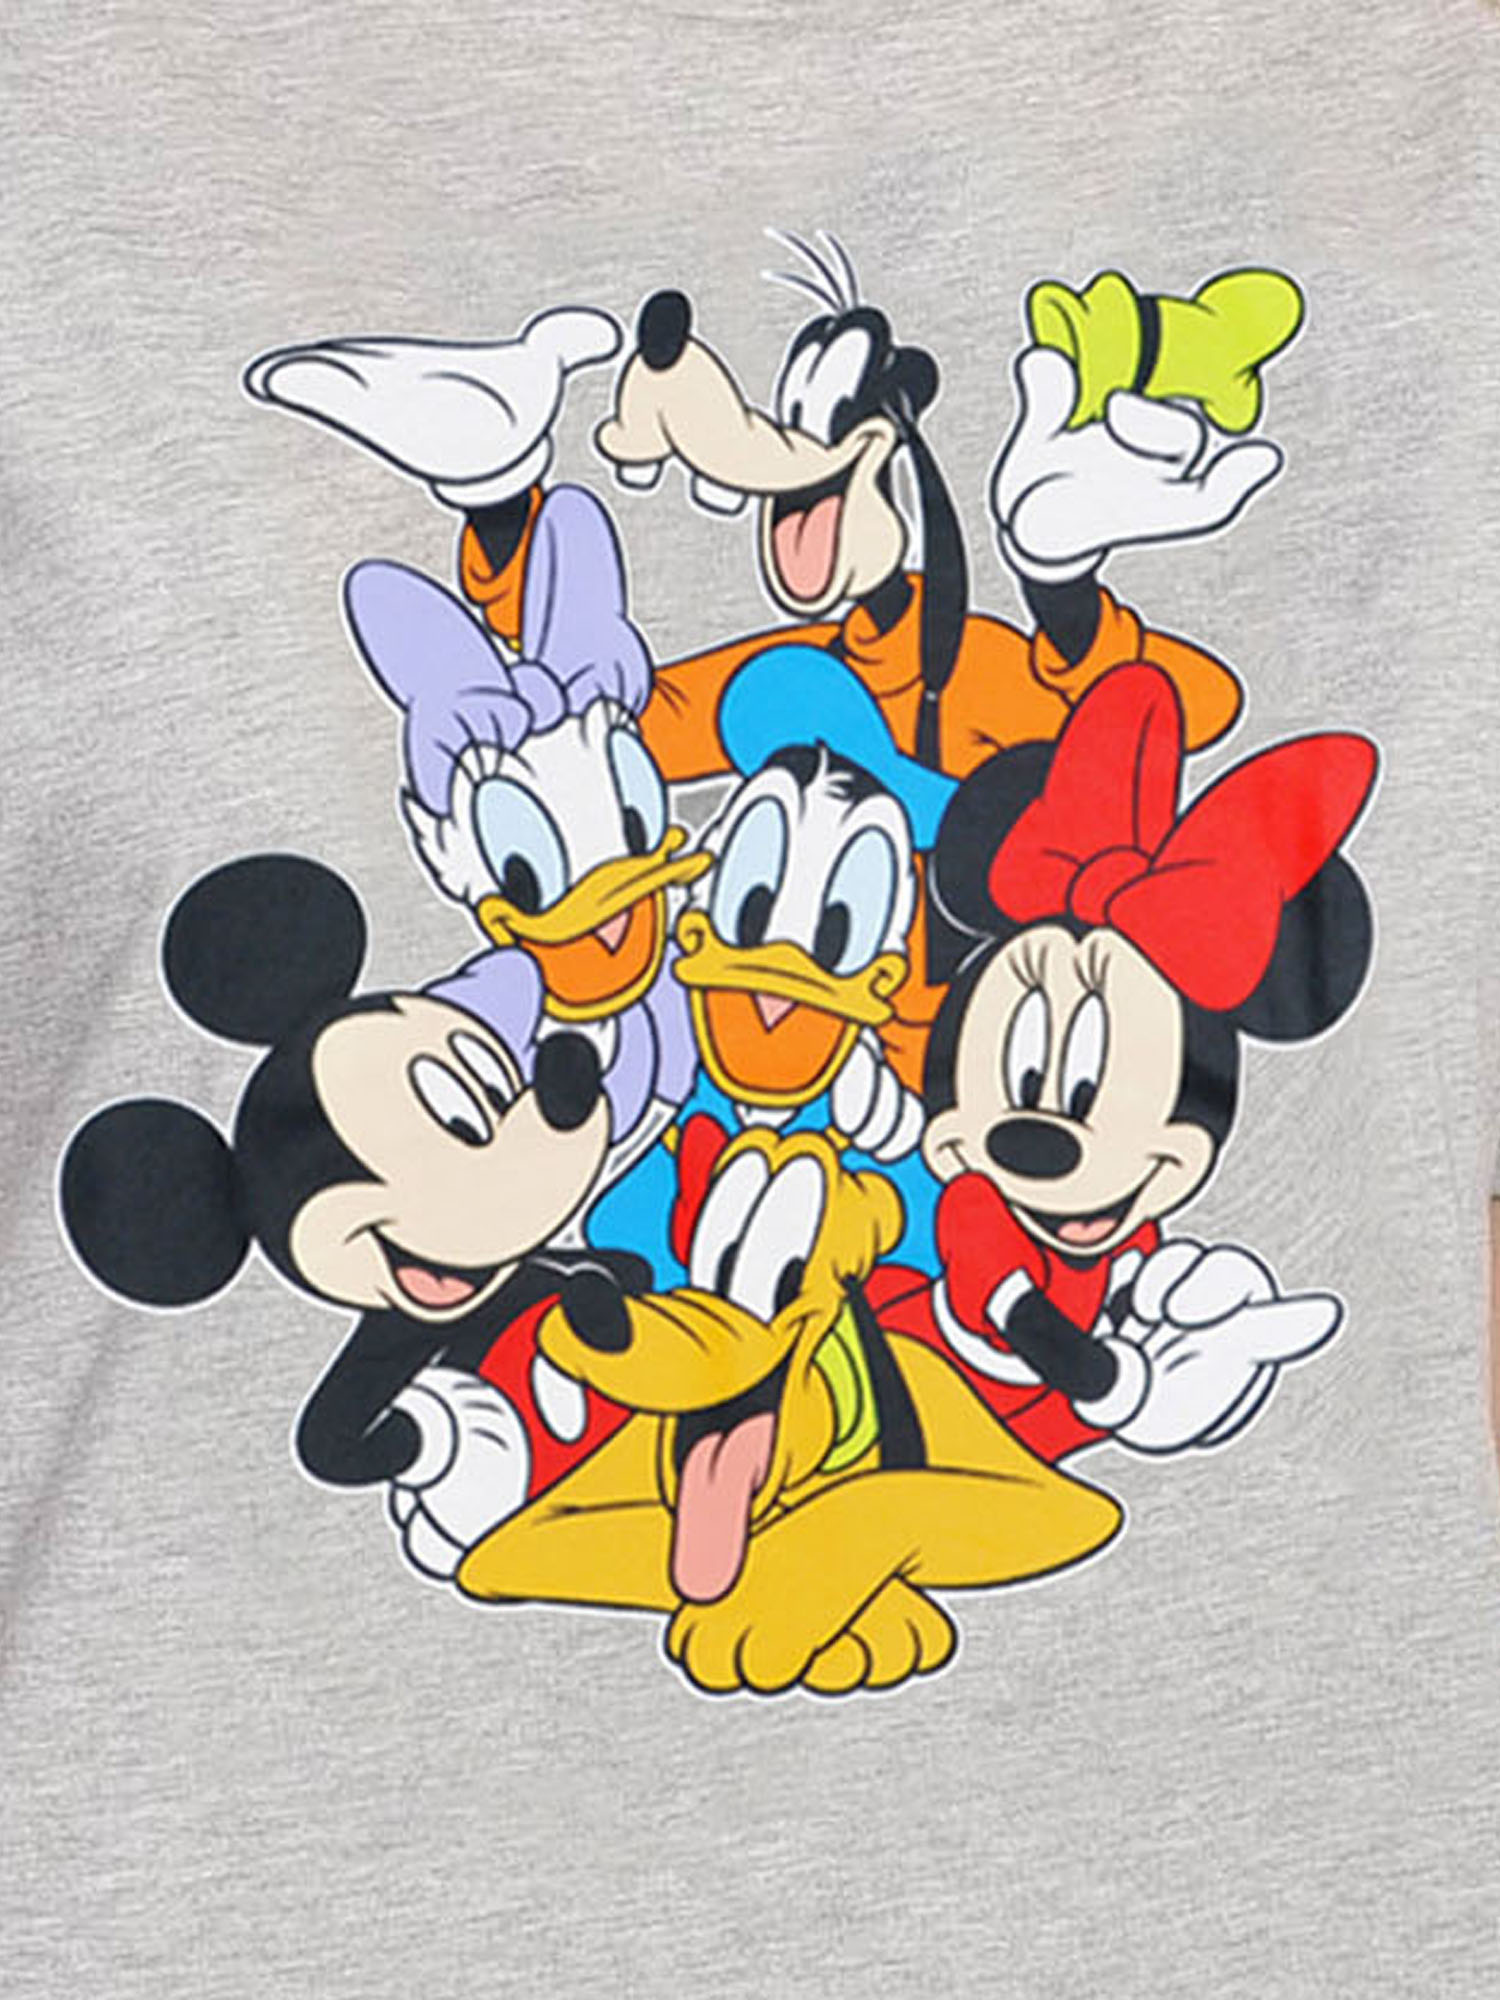 21f97f2114a90 Plus Size Mickey Mouse   Friends T-Shirt Gray Minnie Daisy Pluto -  SHOPitFashion